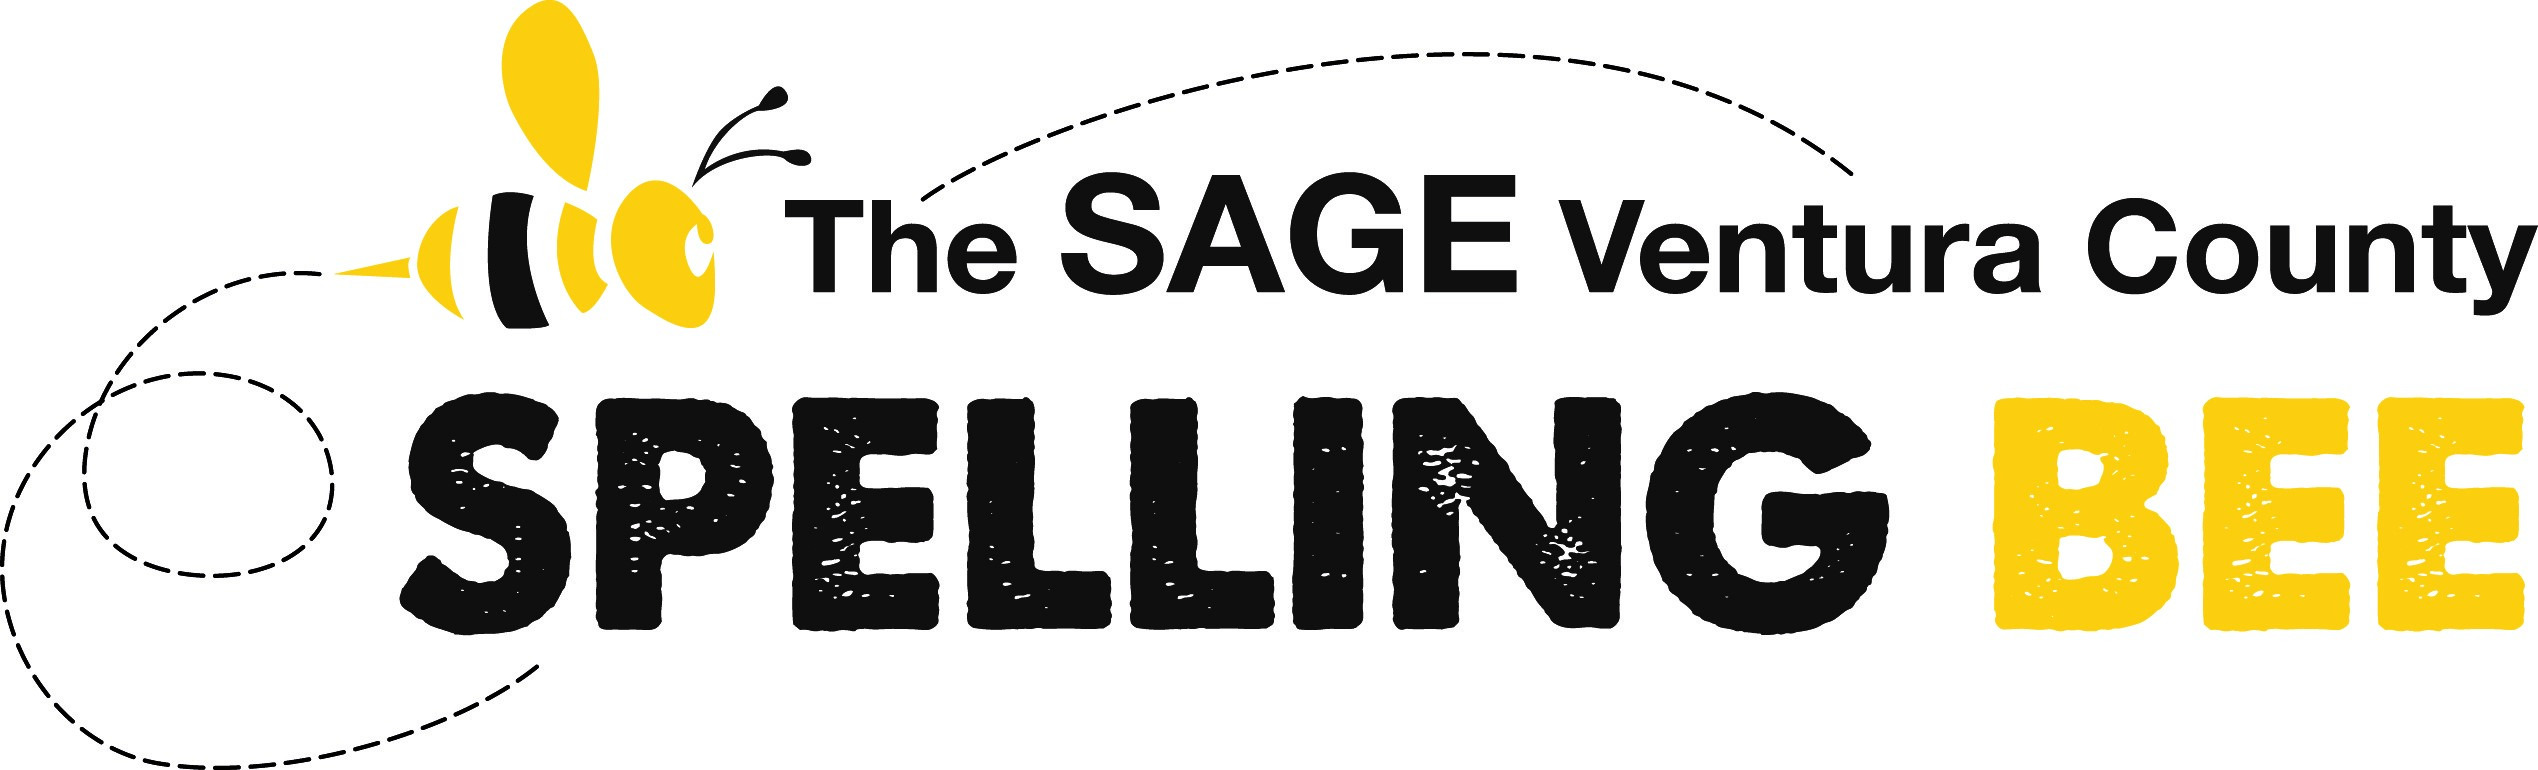 The SAGE Ventura County Spelling Bee logo